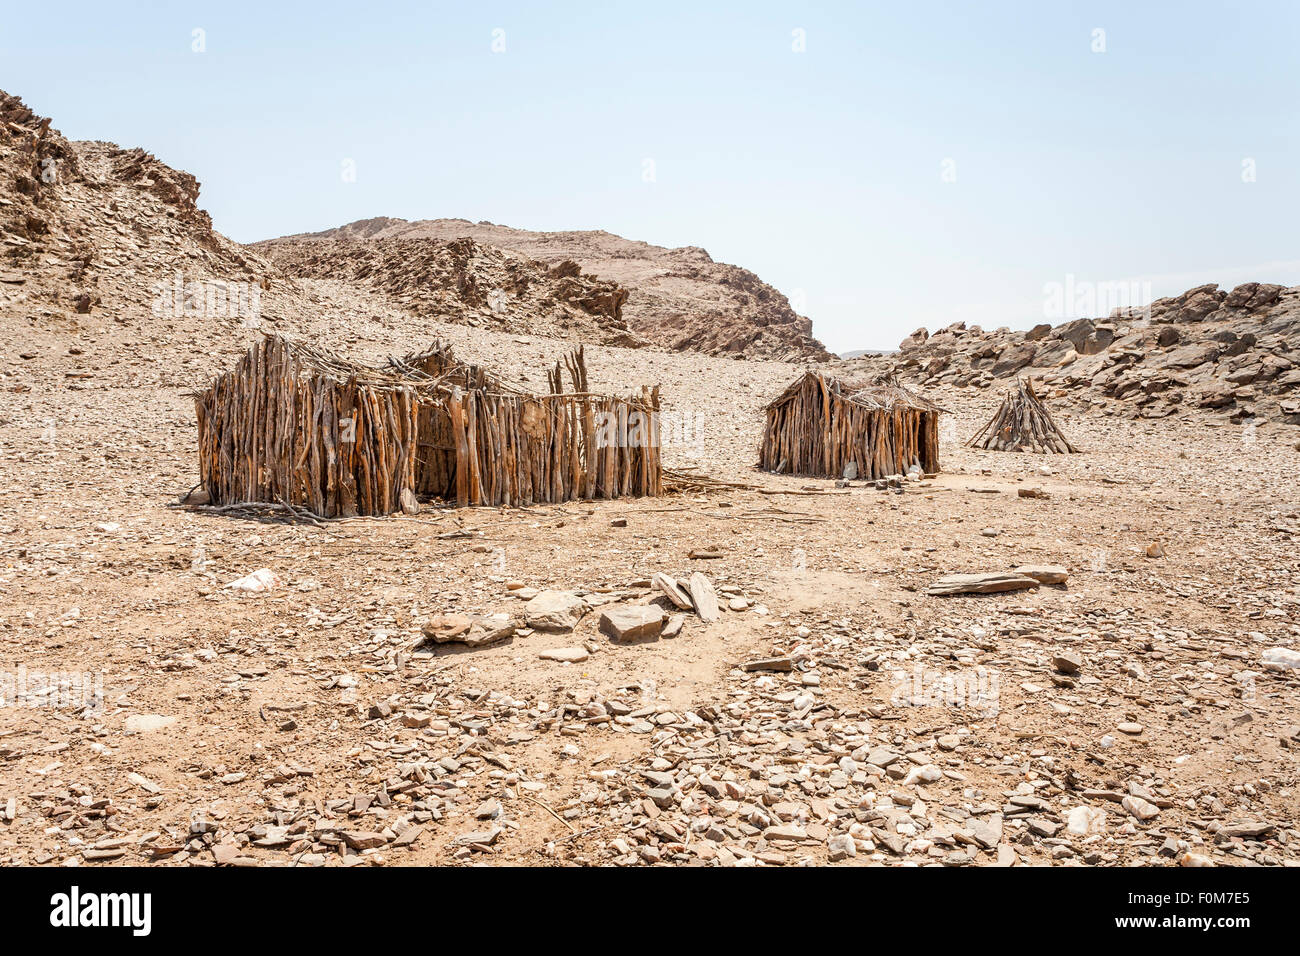 Angolan landscape and lifestyle: abandoned wooden frames of primitive mud huts in arid desert terrain, southern - Stock Image